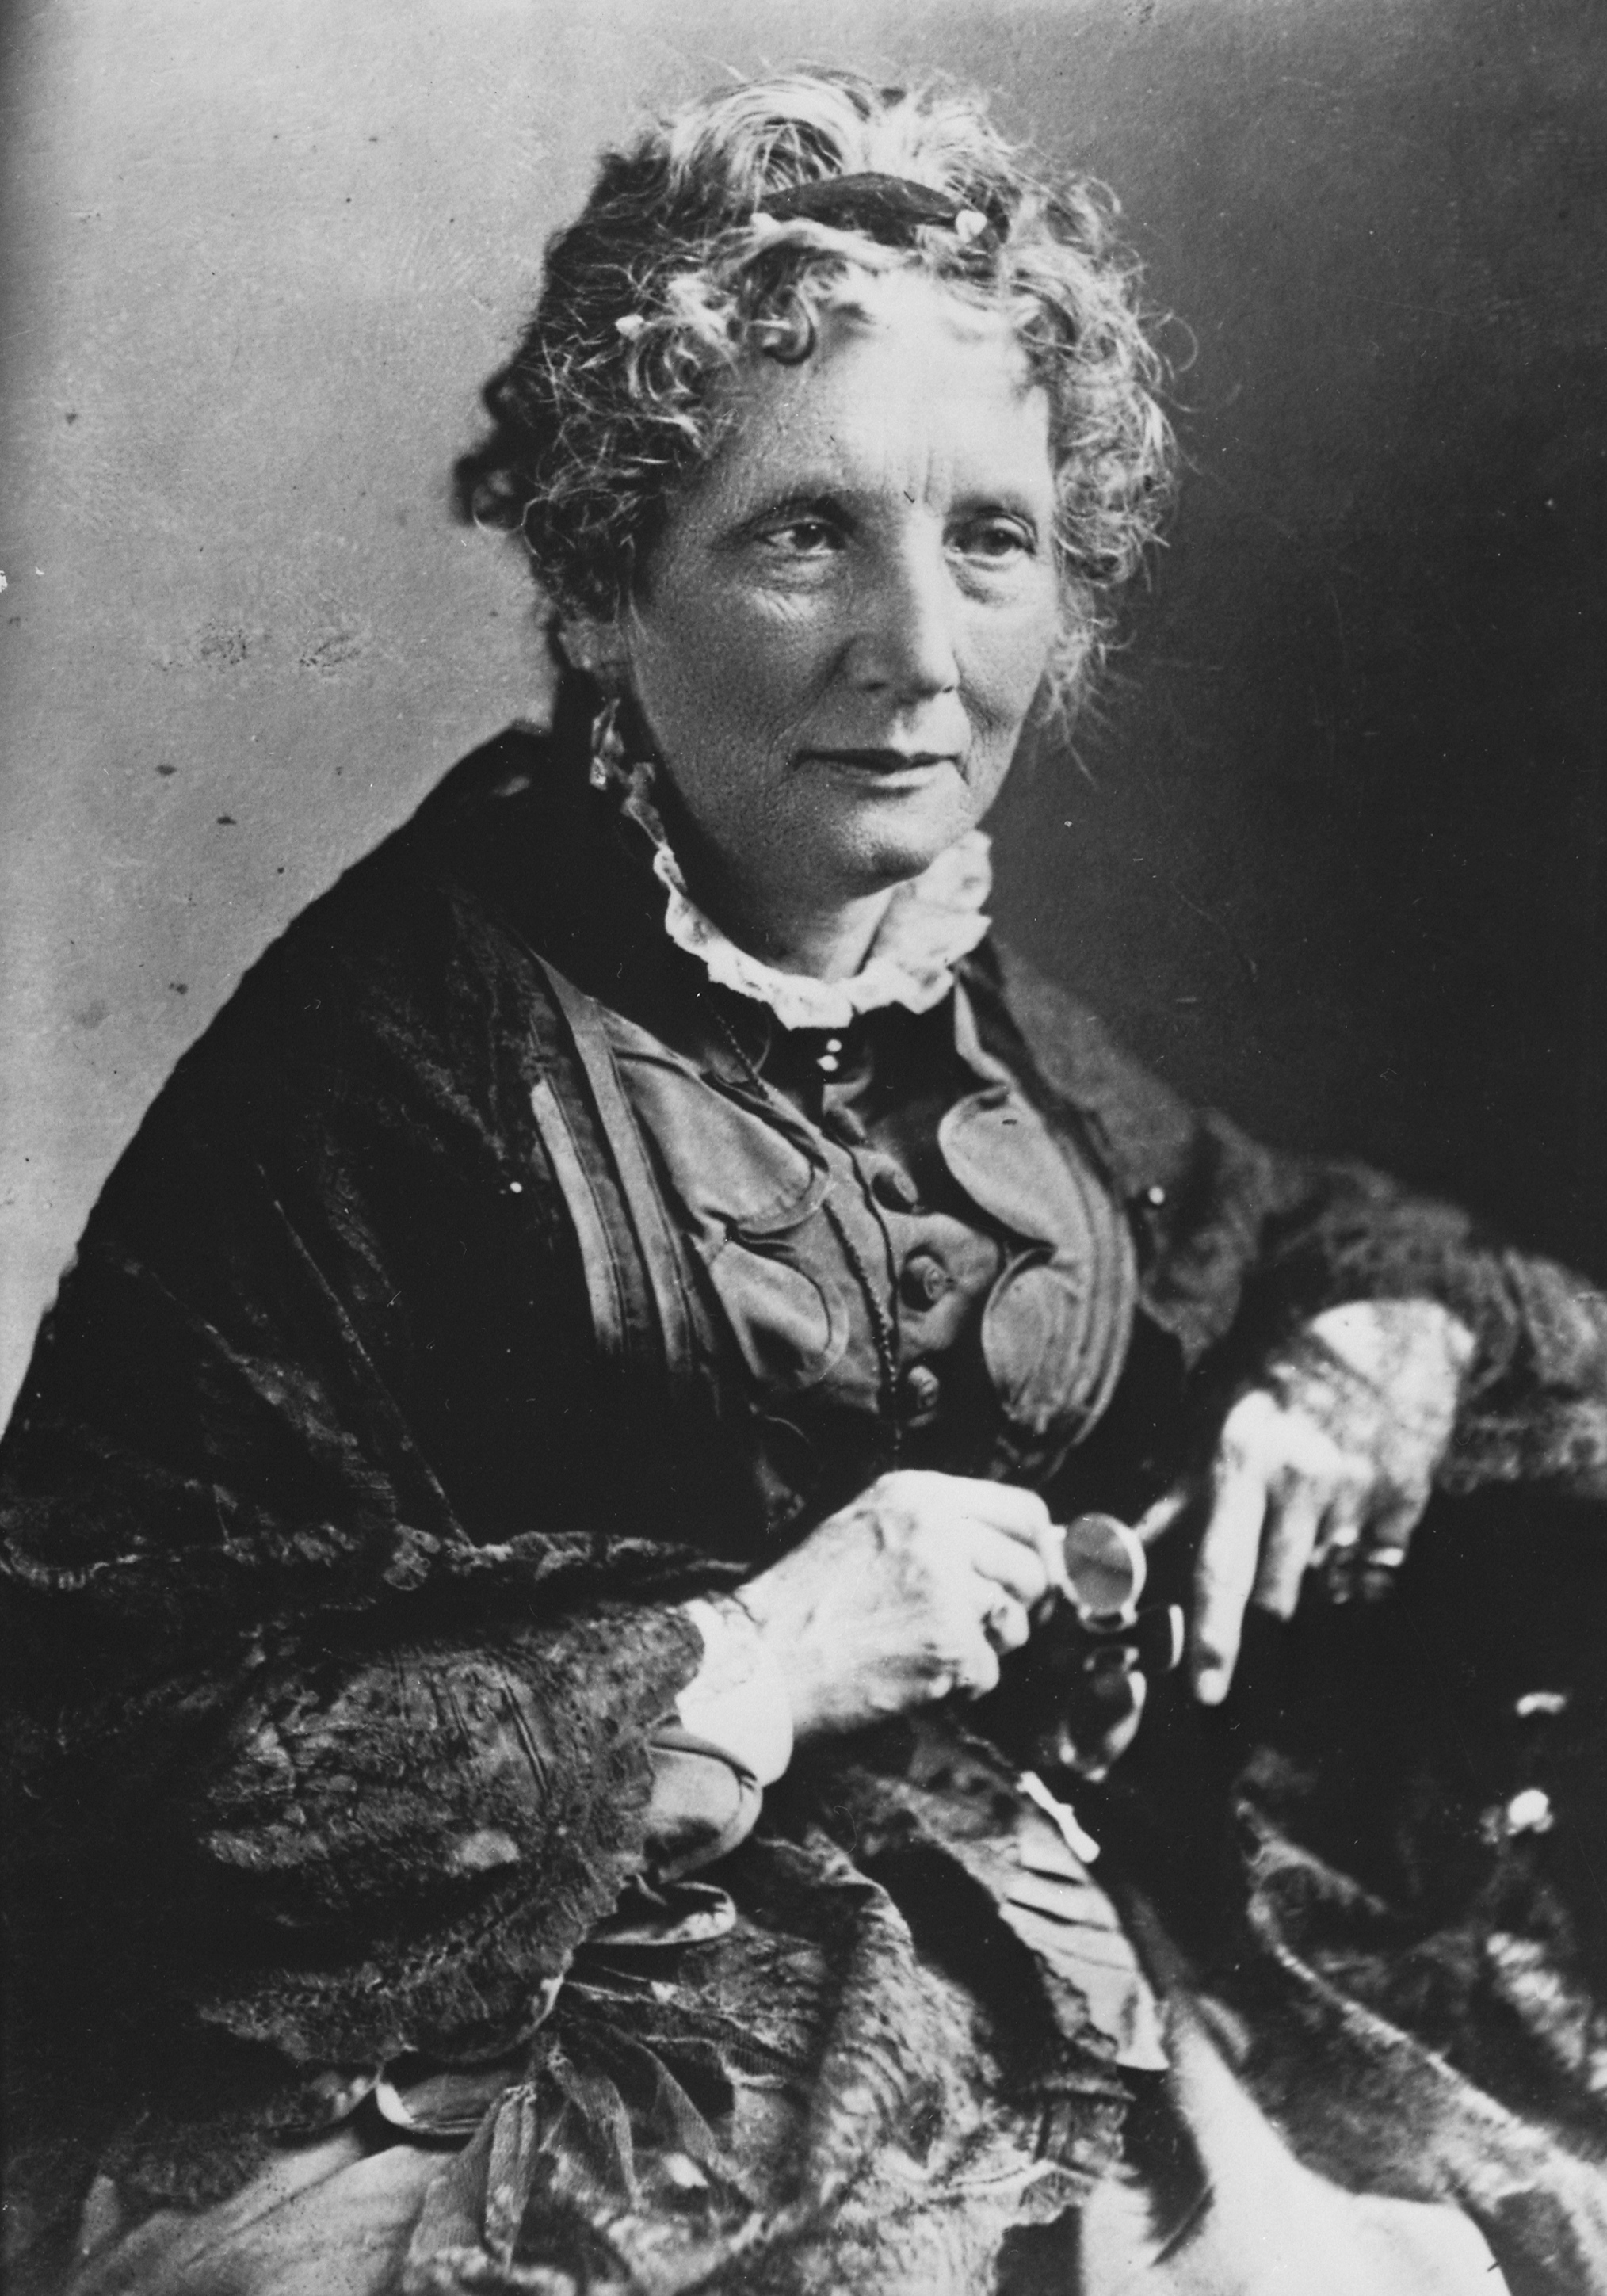 Research Paper on Harriet Beecher Stowe